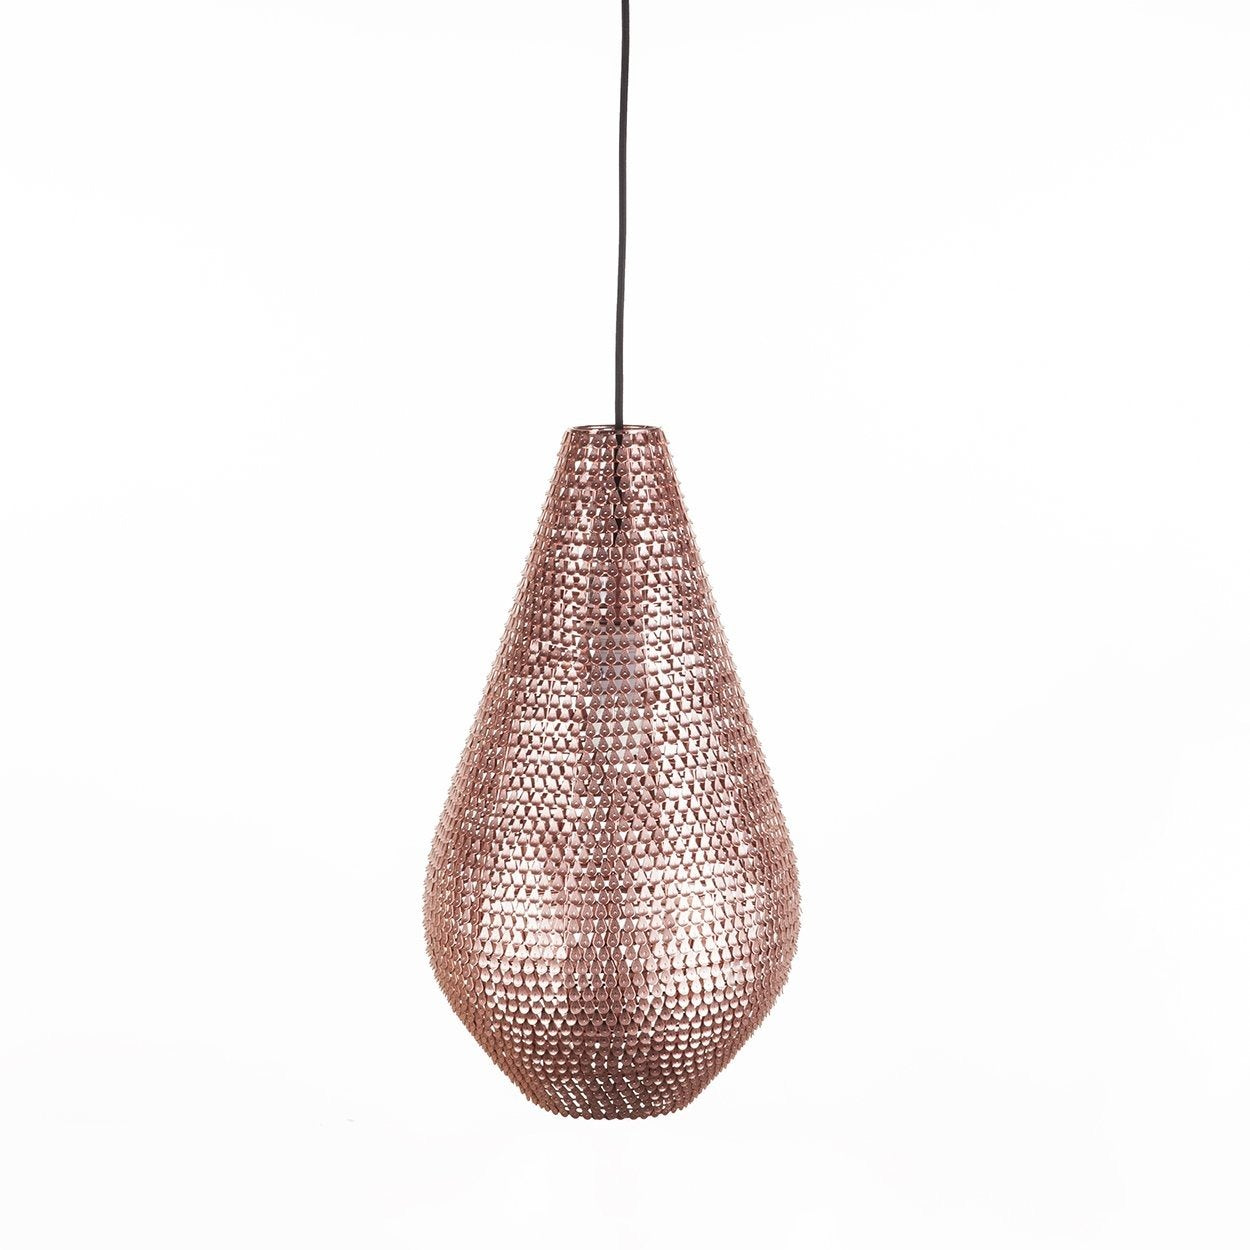 [LI3094COPPER] The Setermoen Pendant SALE